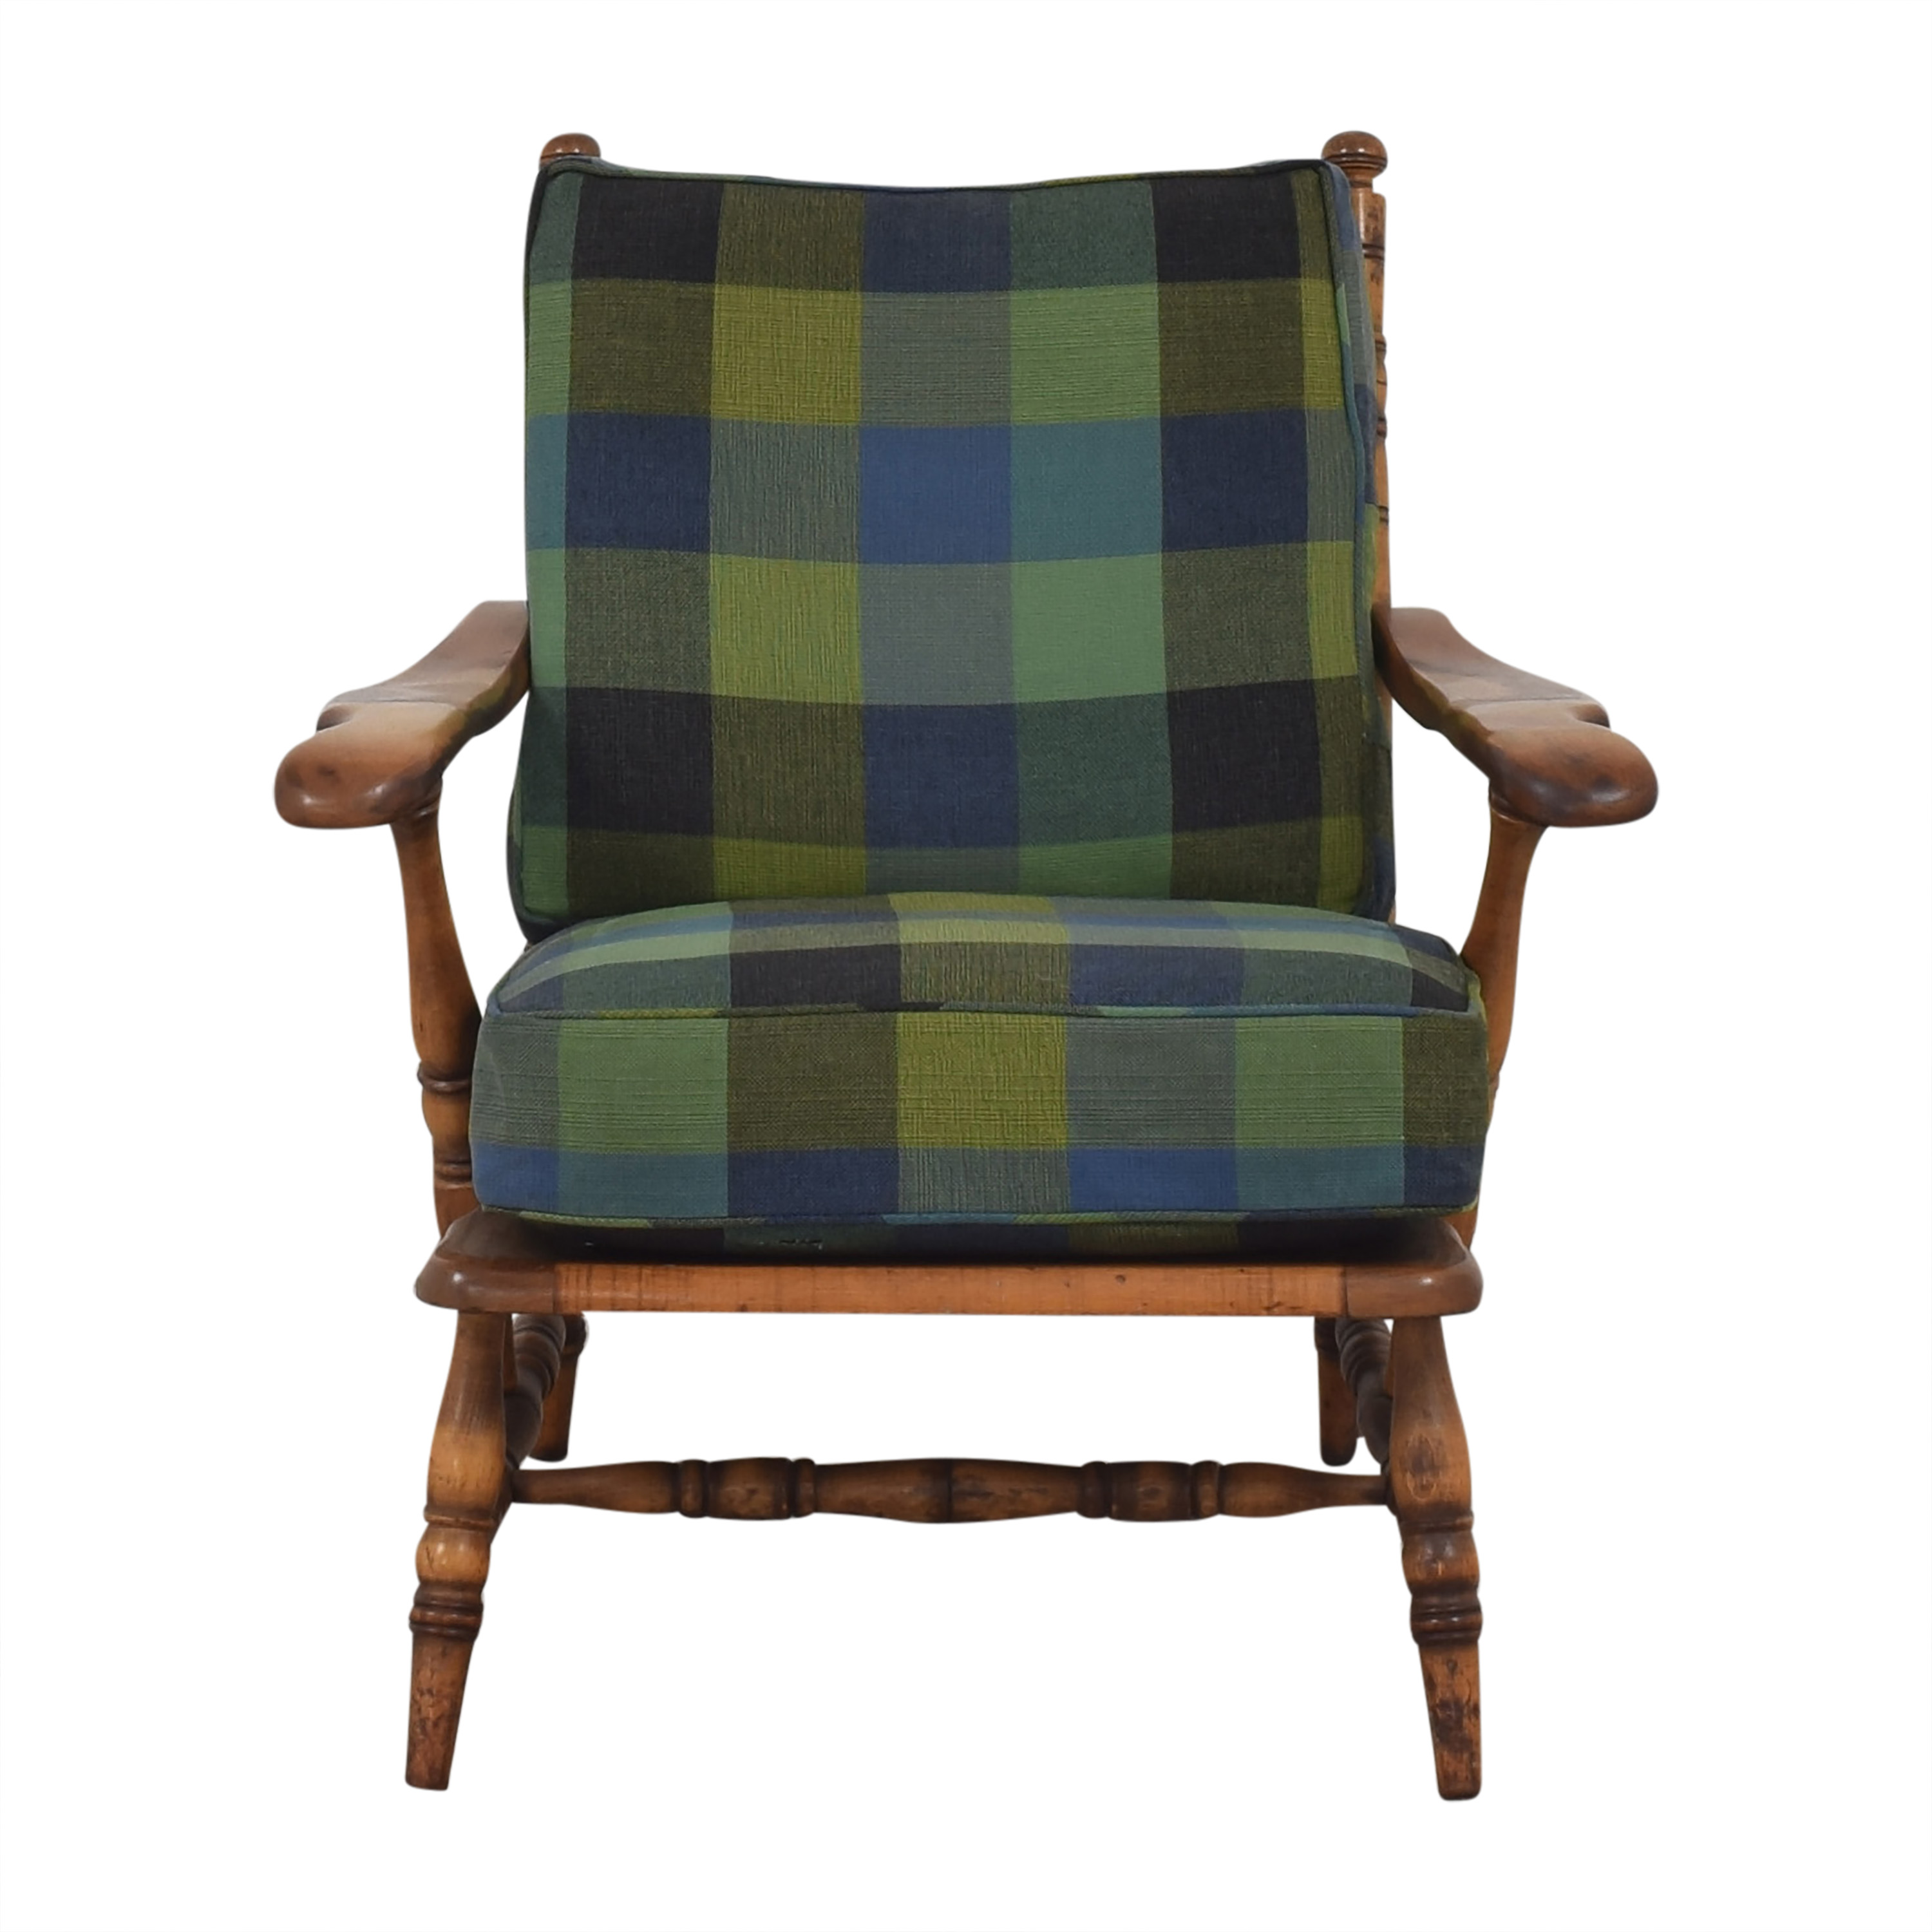 shop Plaid Cushion Easy Chair with Wood Frame  Chairs